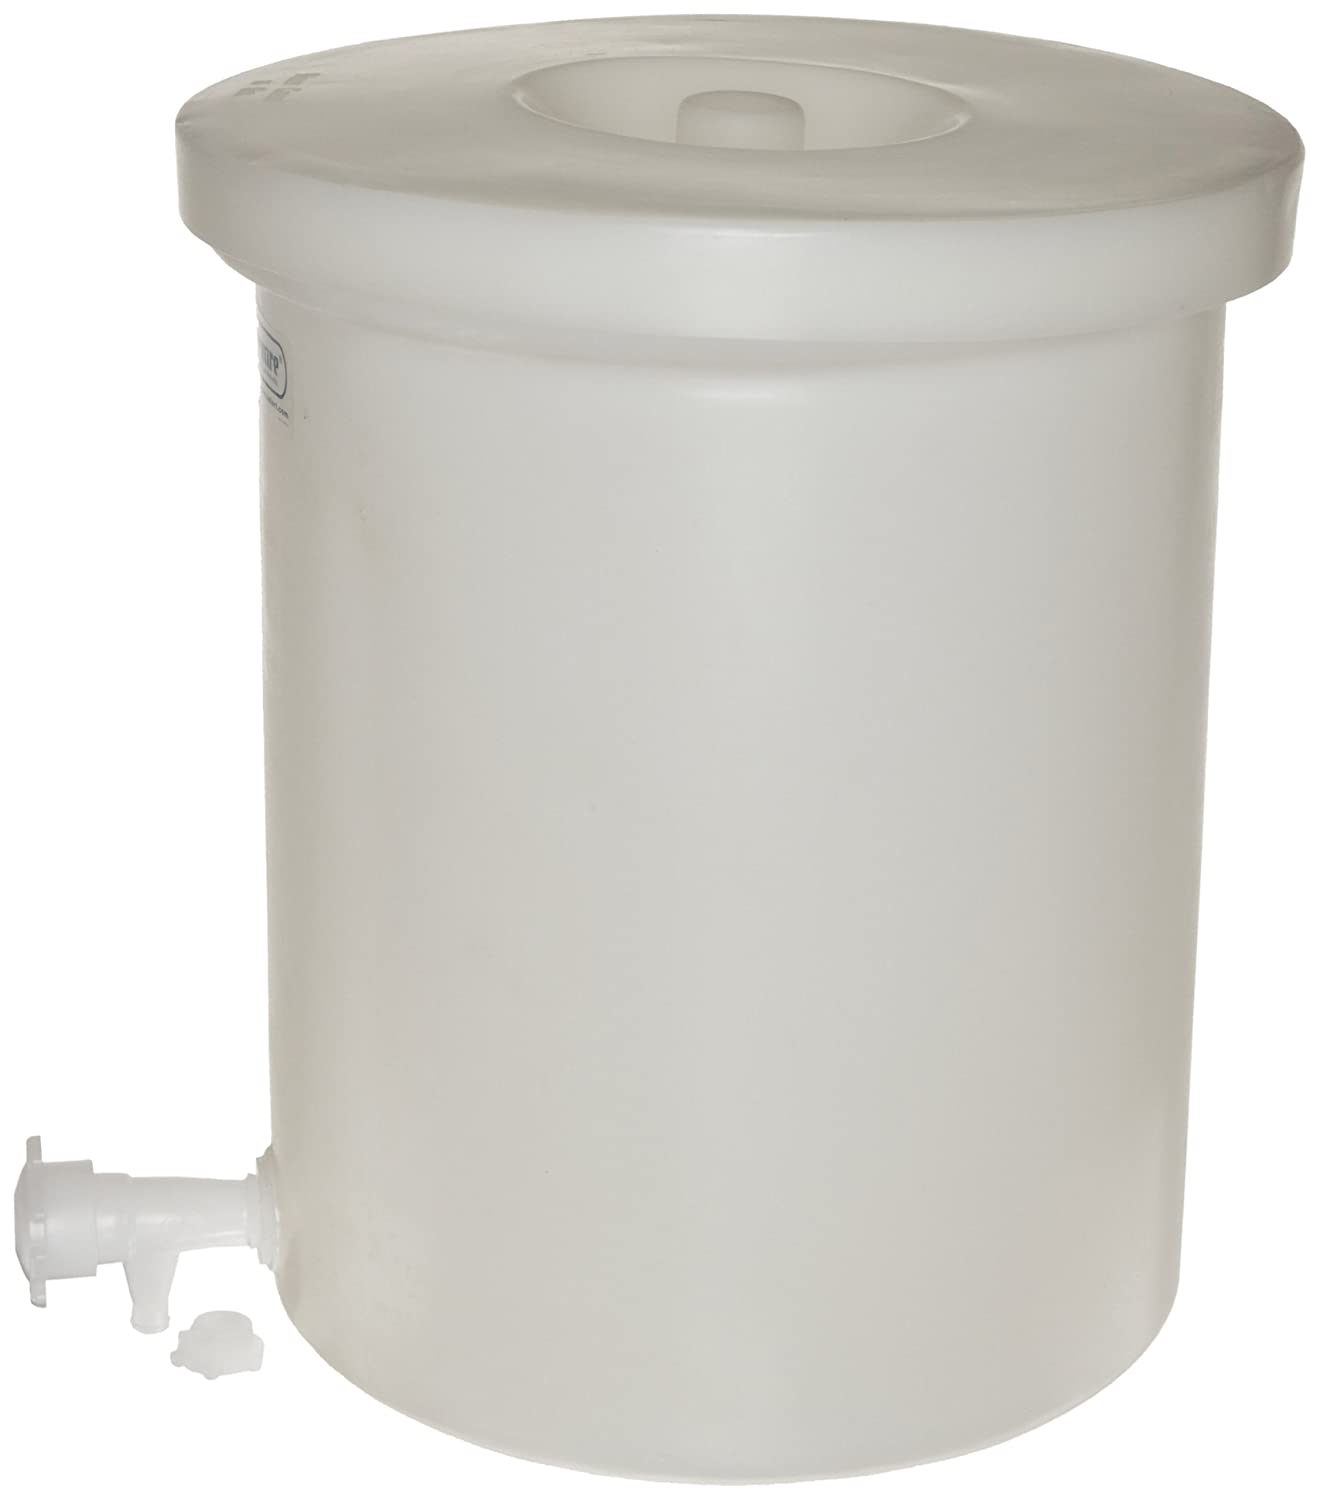 Bel-Art Polly-Crock Polyethylene Tank with Lid, without